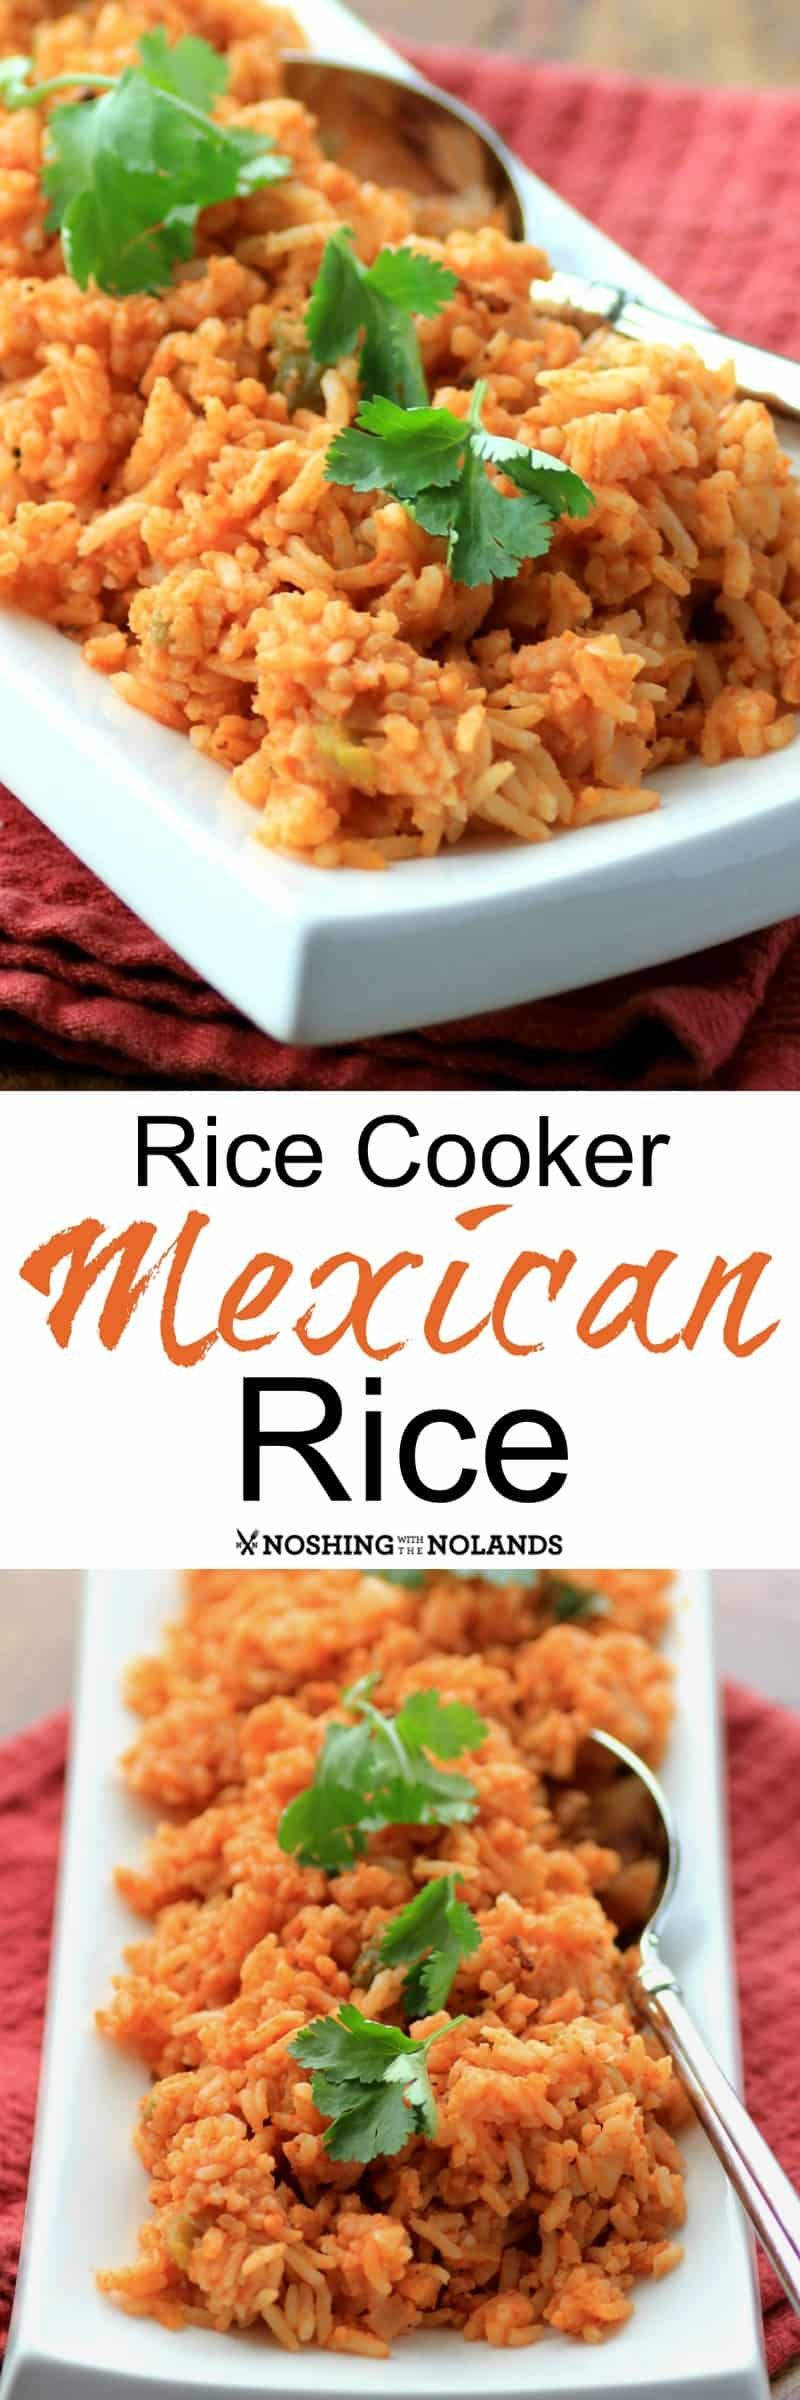 A very easy Mexican side dish that cooks up in your rice cooker. #rice #Mexican #sidedish # ricecooker #ricecookermeals